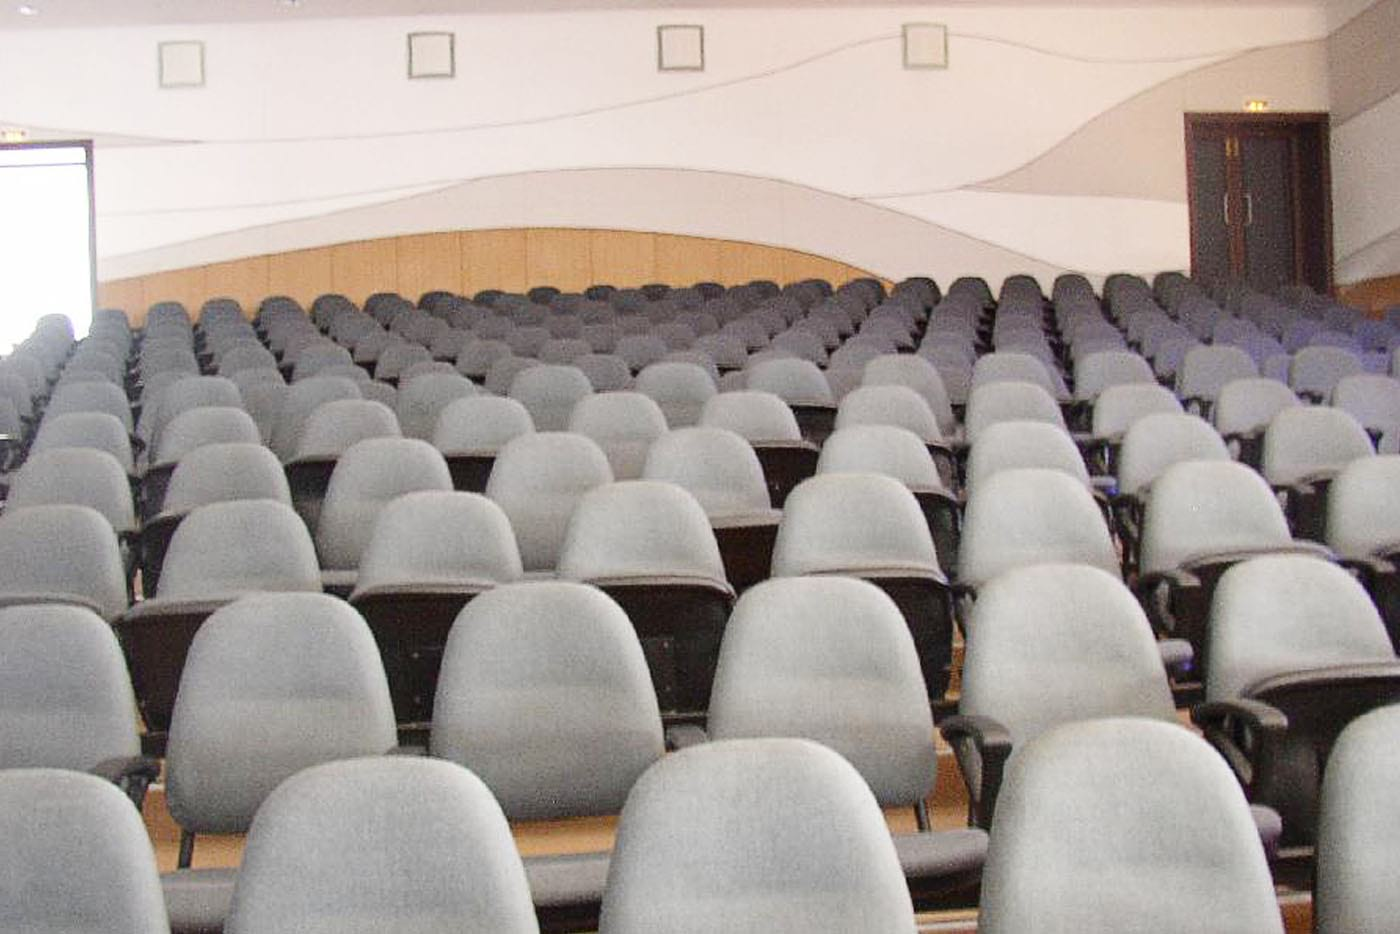 SSN College of Engineering Auditorium Zoom View